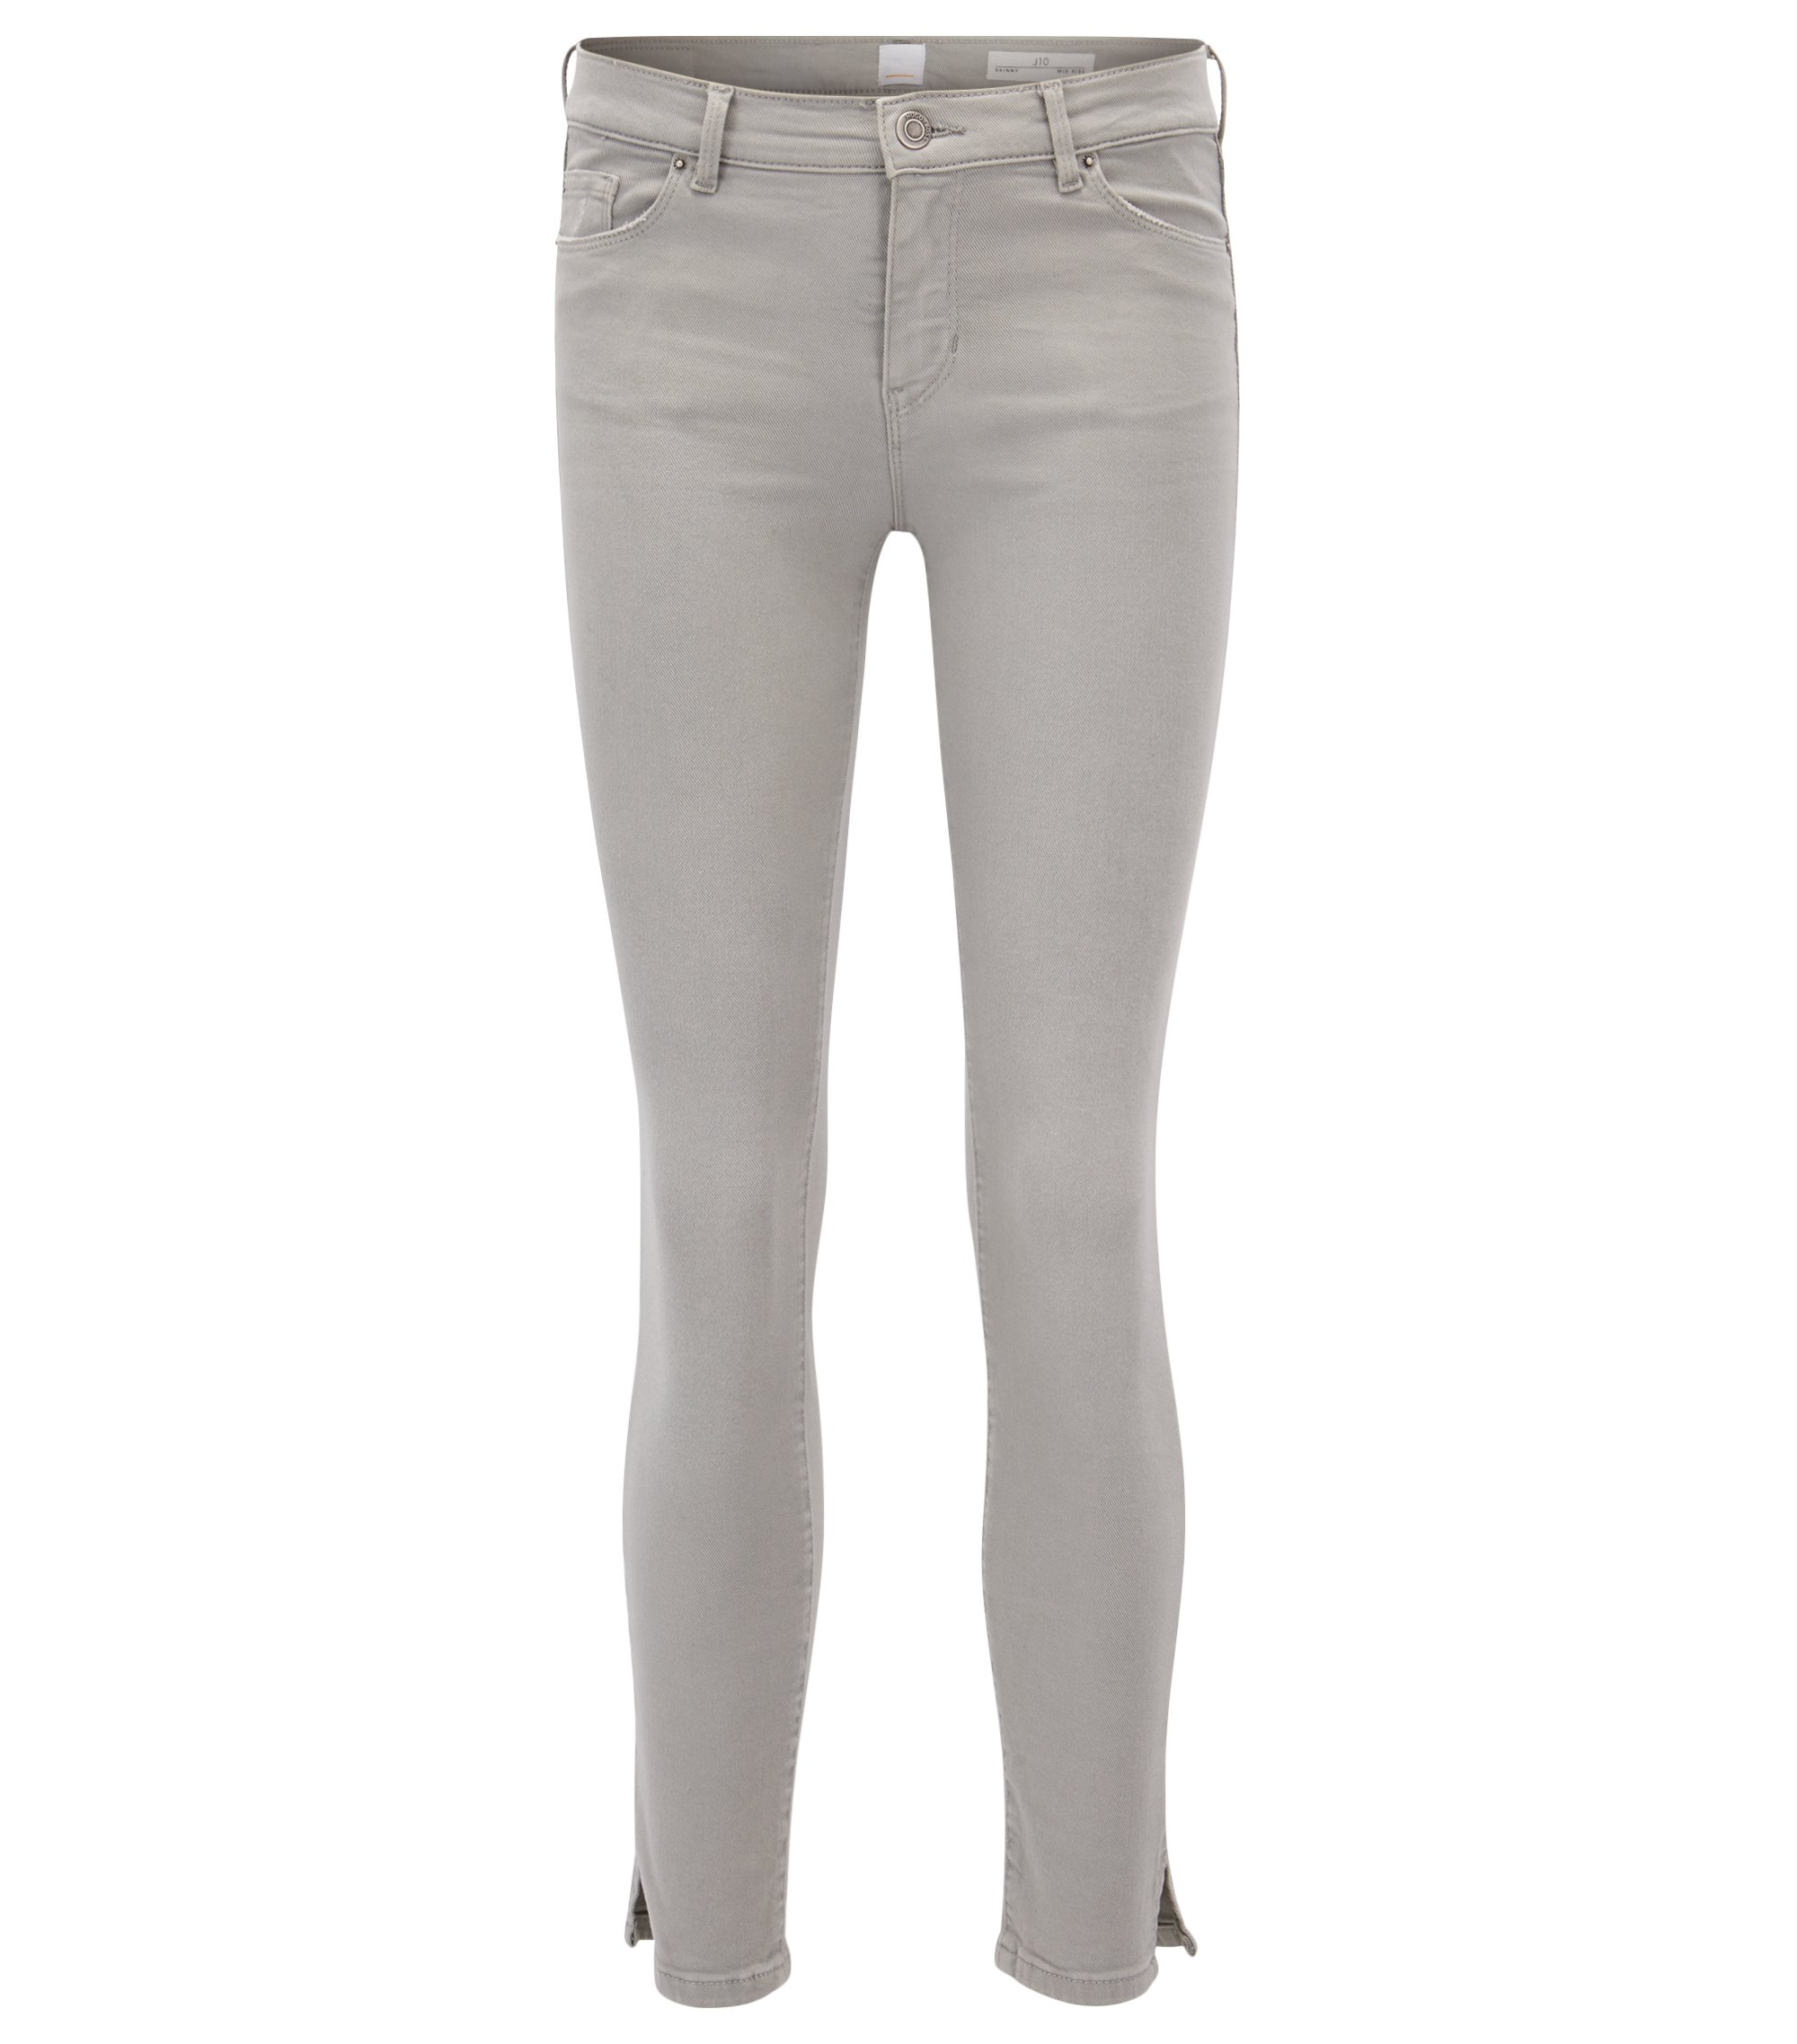 Skinny-Fit Jeans aus Stretch-Denim in Cropped-Länge, Grau